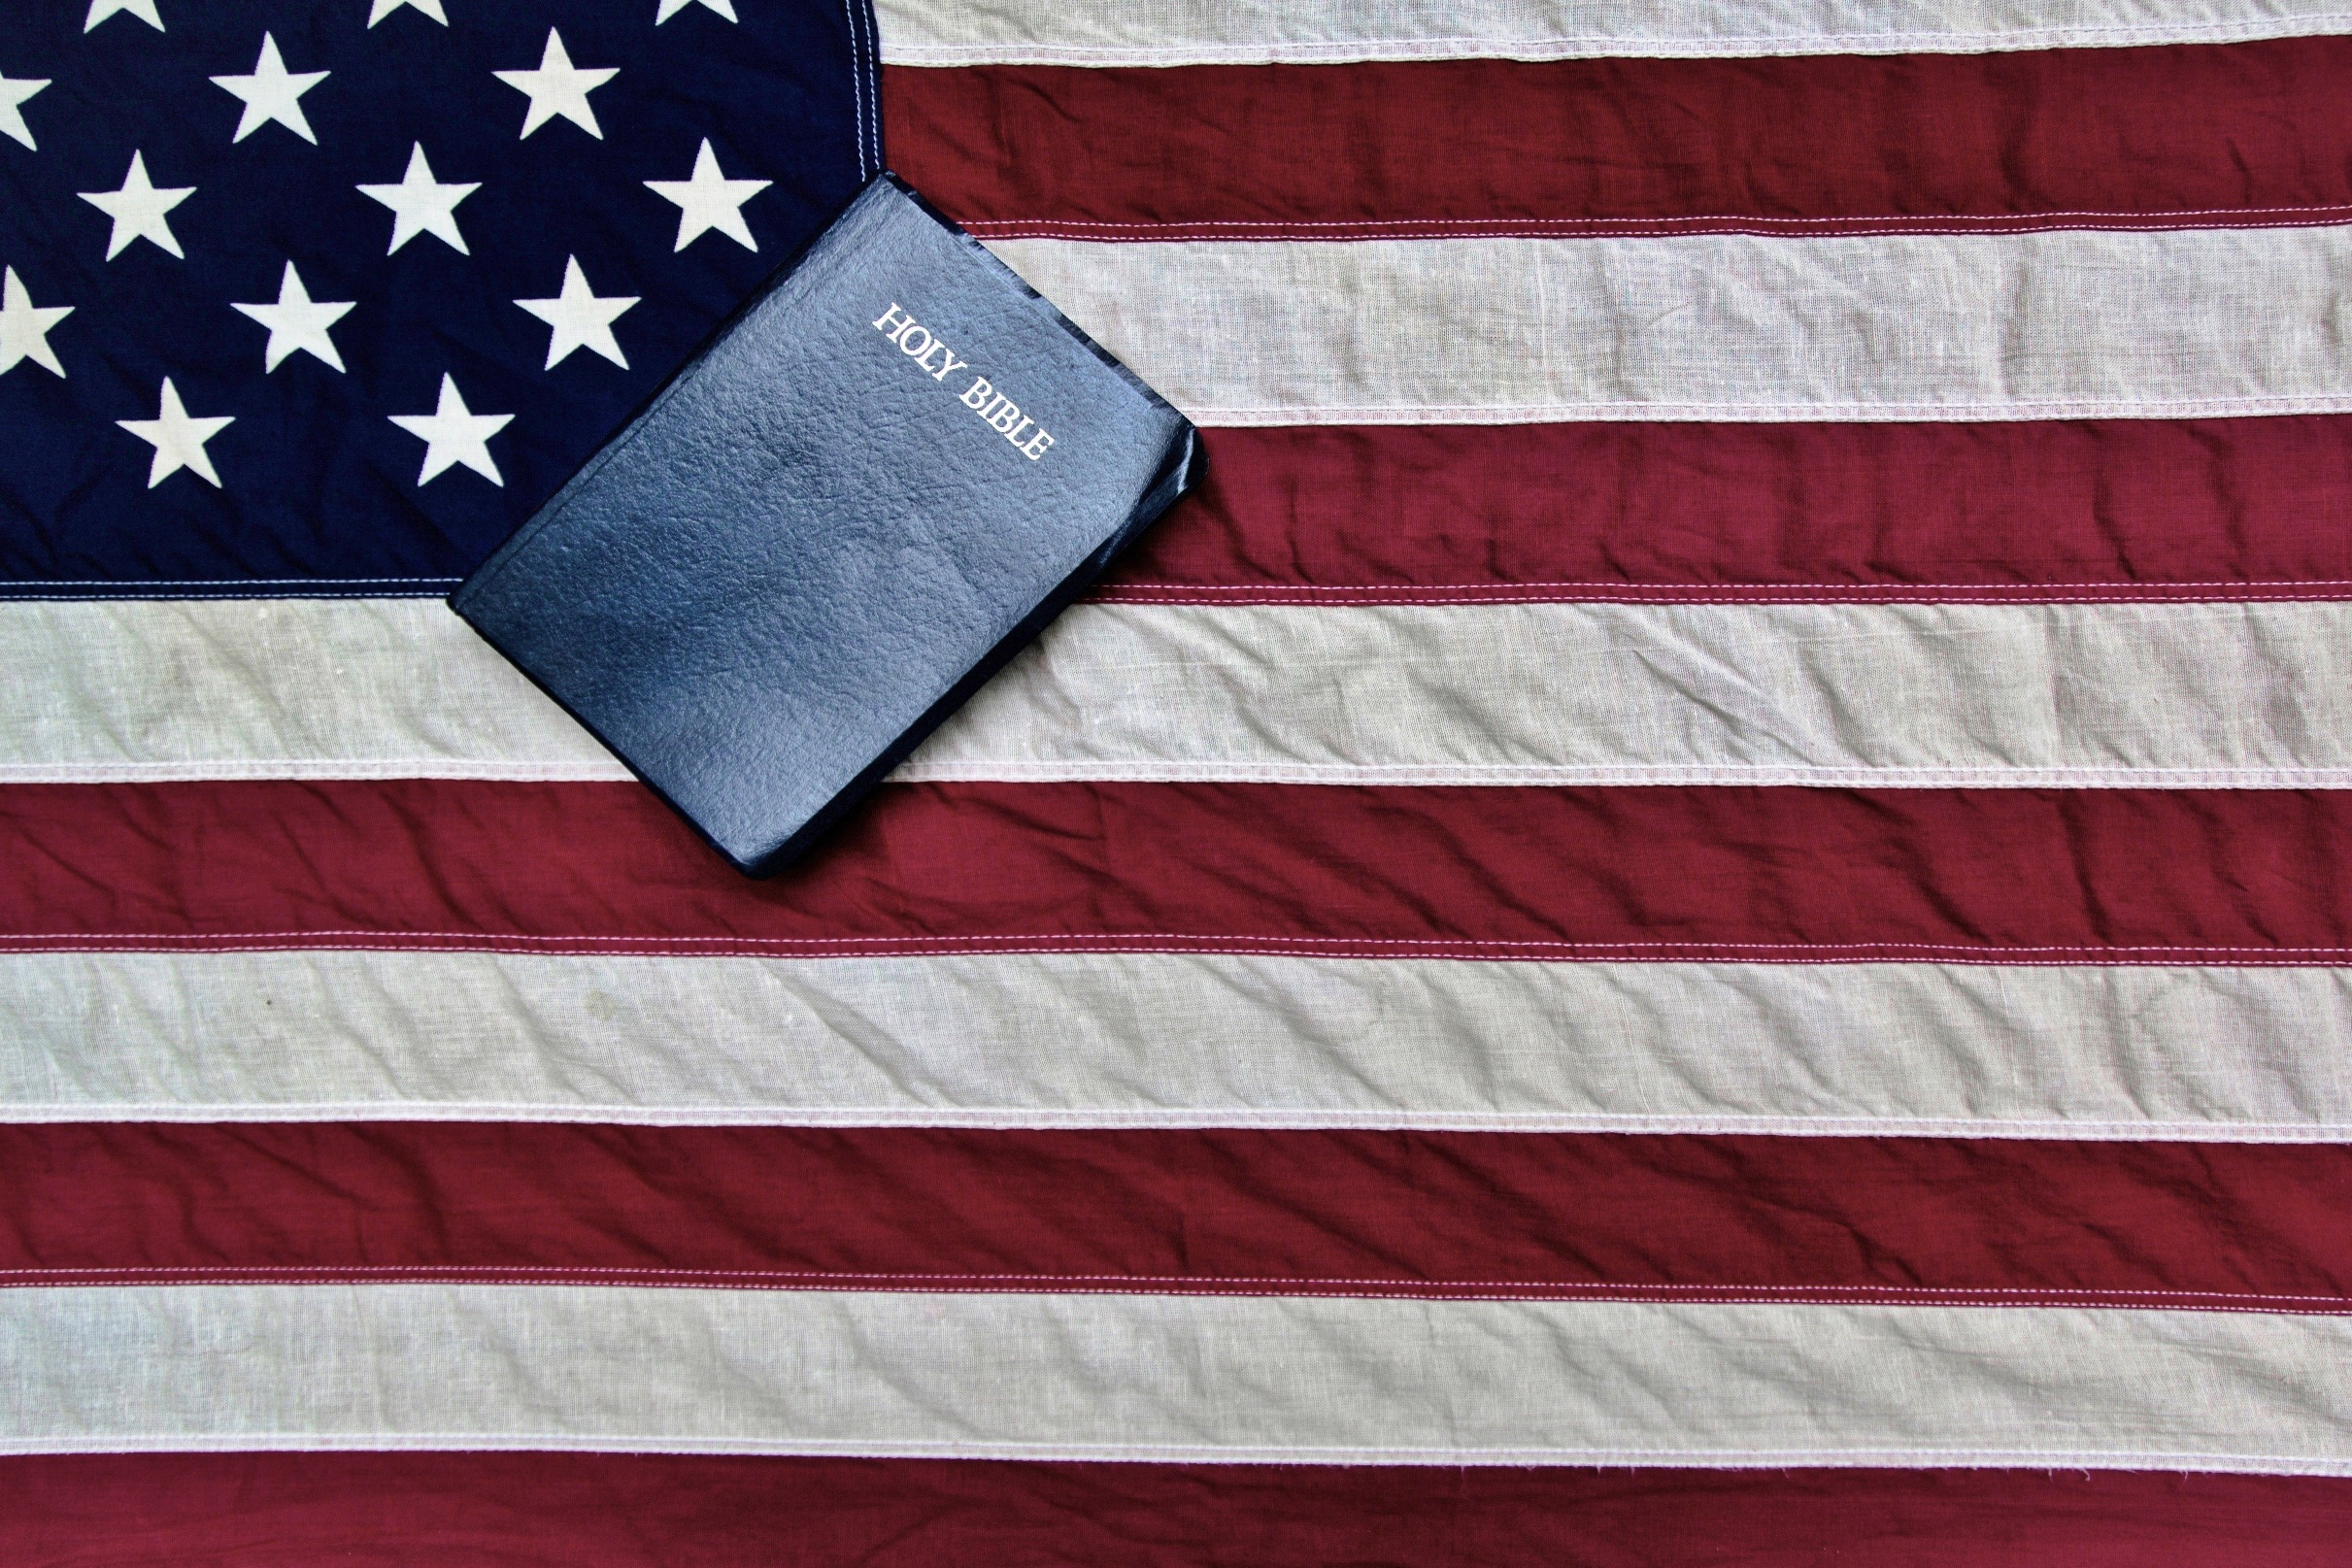 Litigation Update:  COVID-19 and the Supreme Court's Religious Liberty Cases